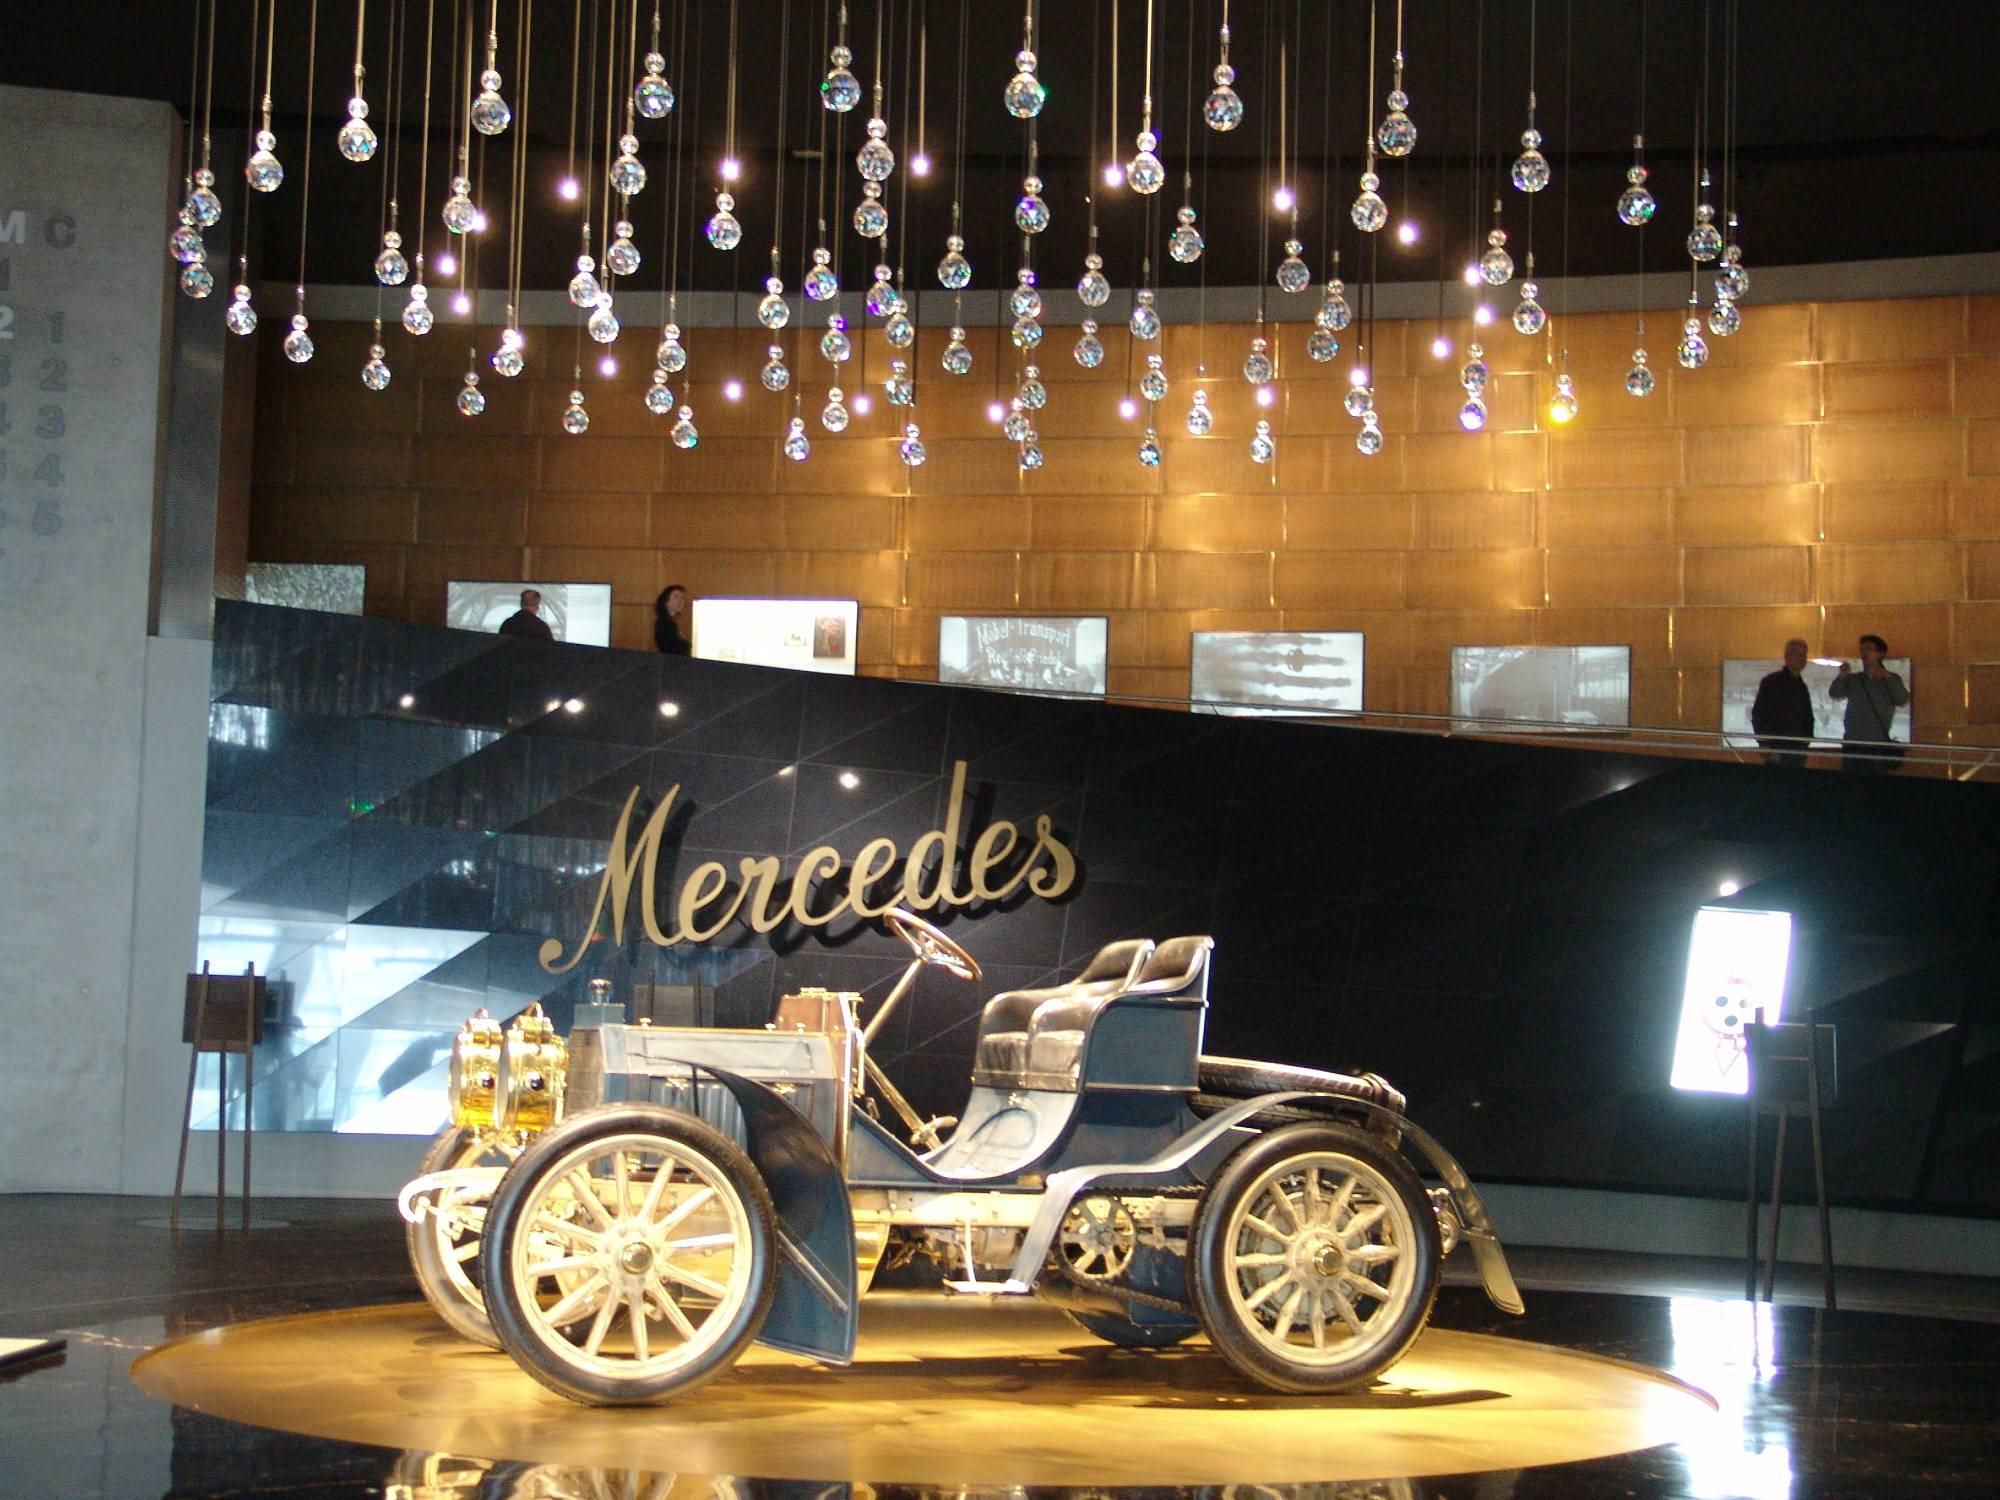 Learn about the history of autombiles at the Mercedes-Benz Museum |PassPorter.com